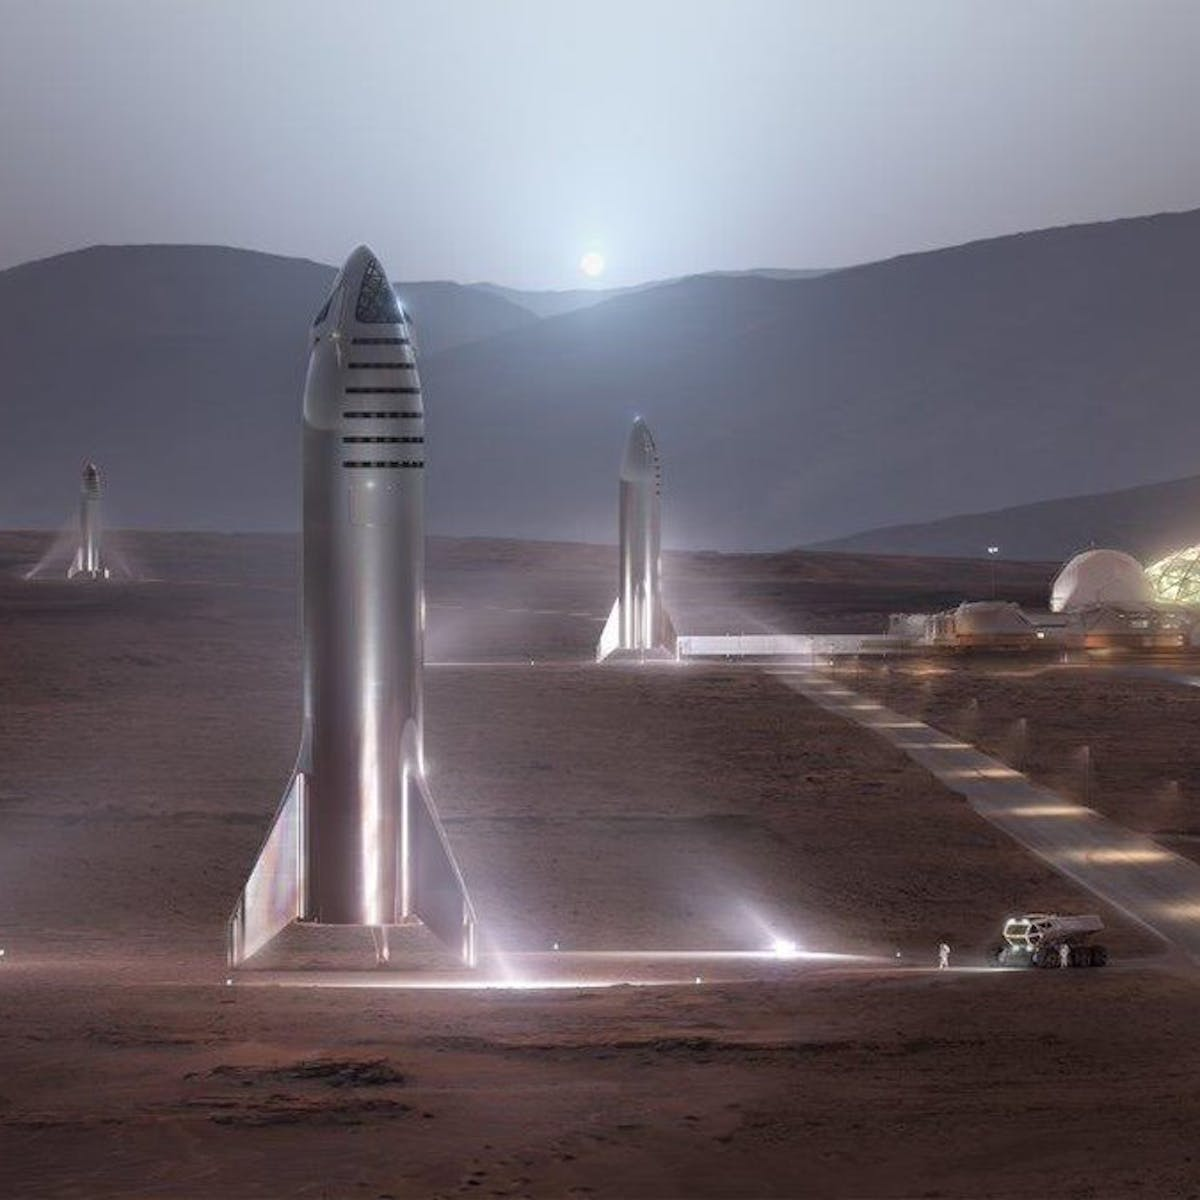 Musk Reads: Starship Gets a New Design